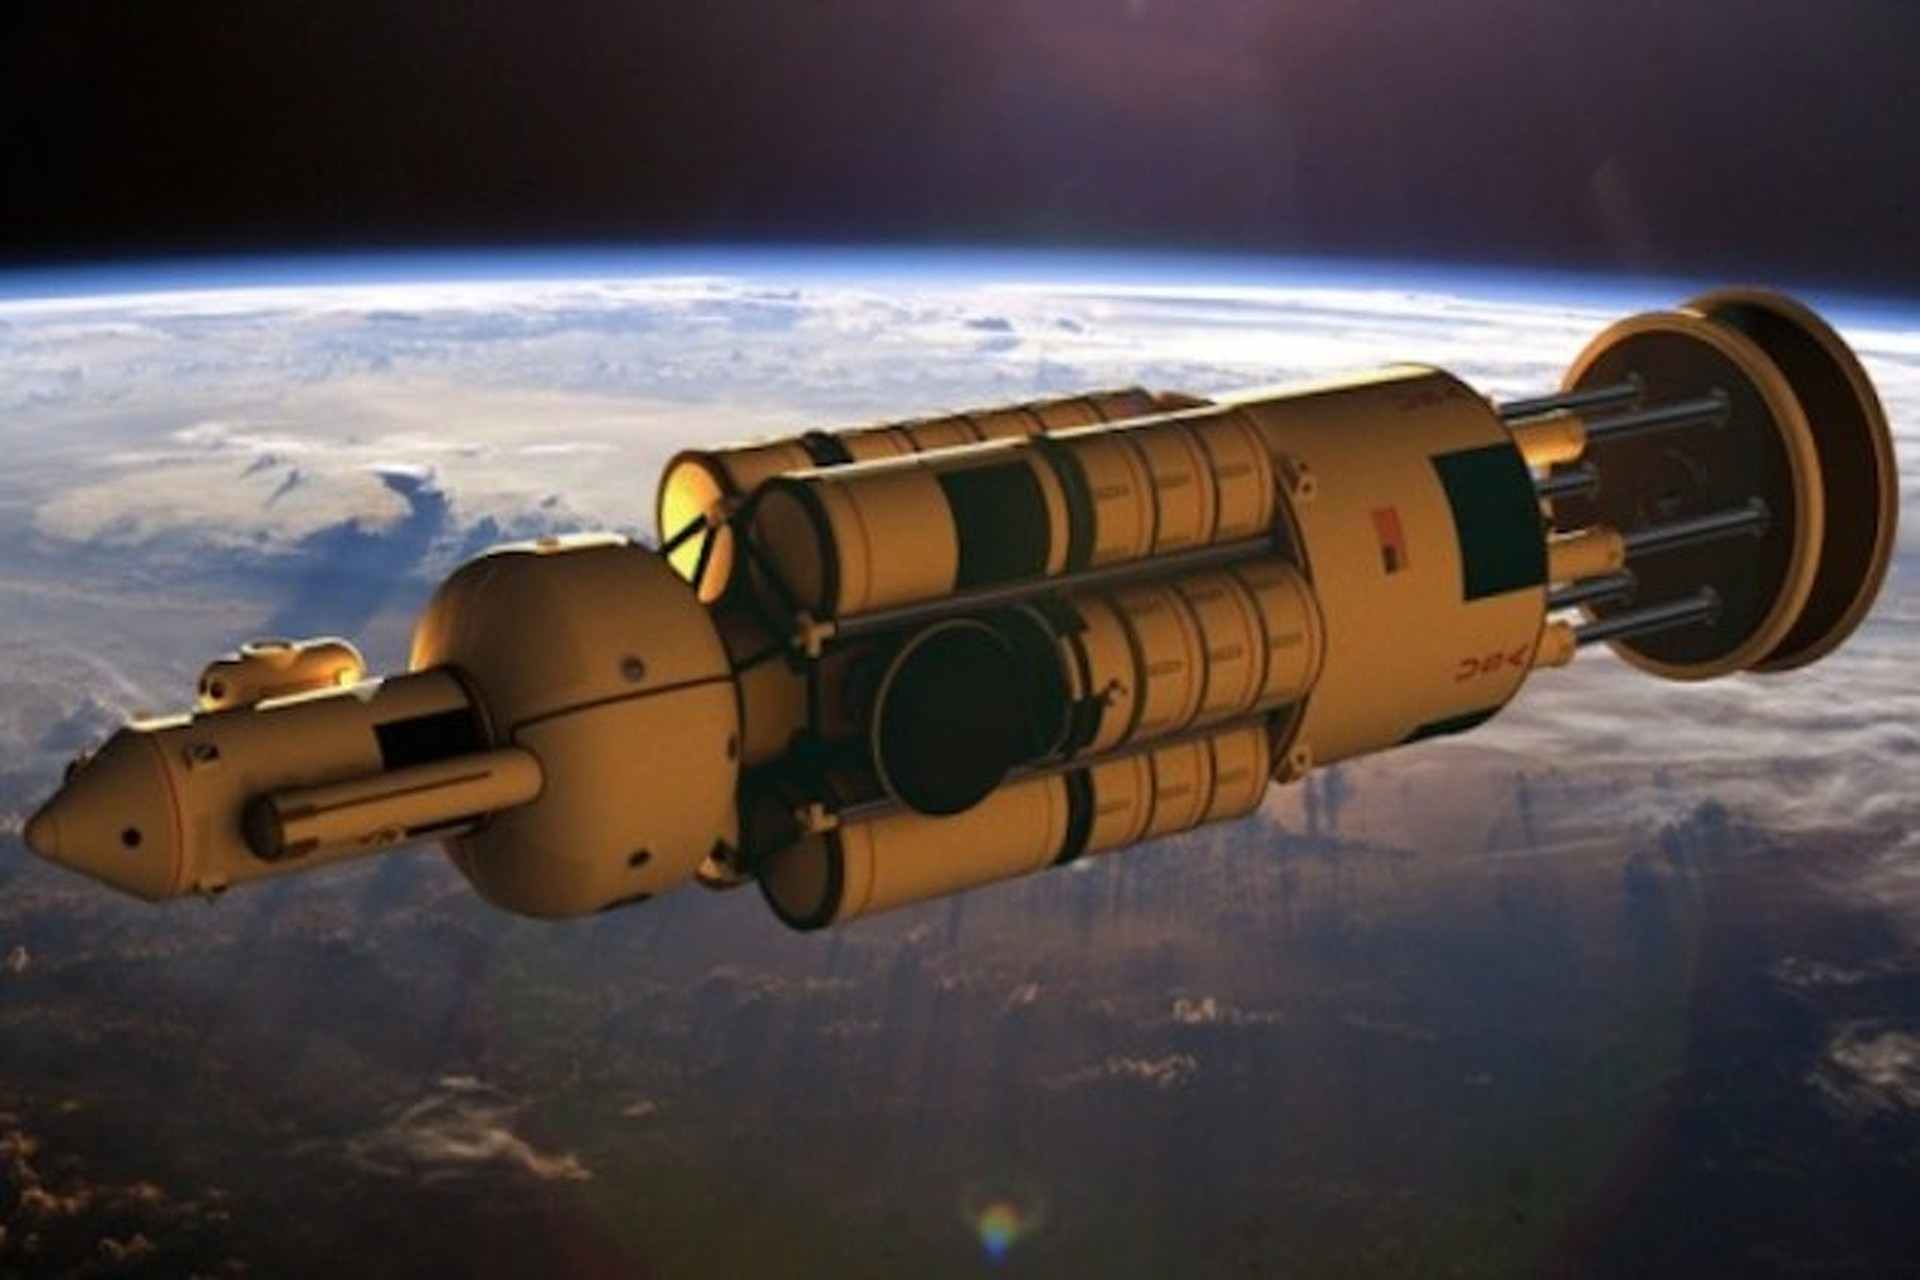 Orion is NASAs new exploration spacecraft designed to carry astronauts to destinations in deep space including an asteroid and Mars Orions first flight test